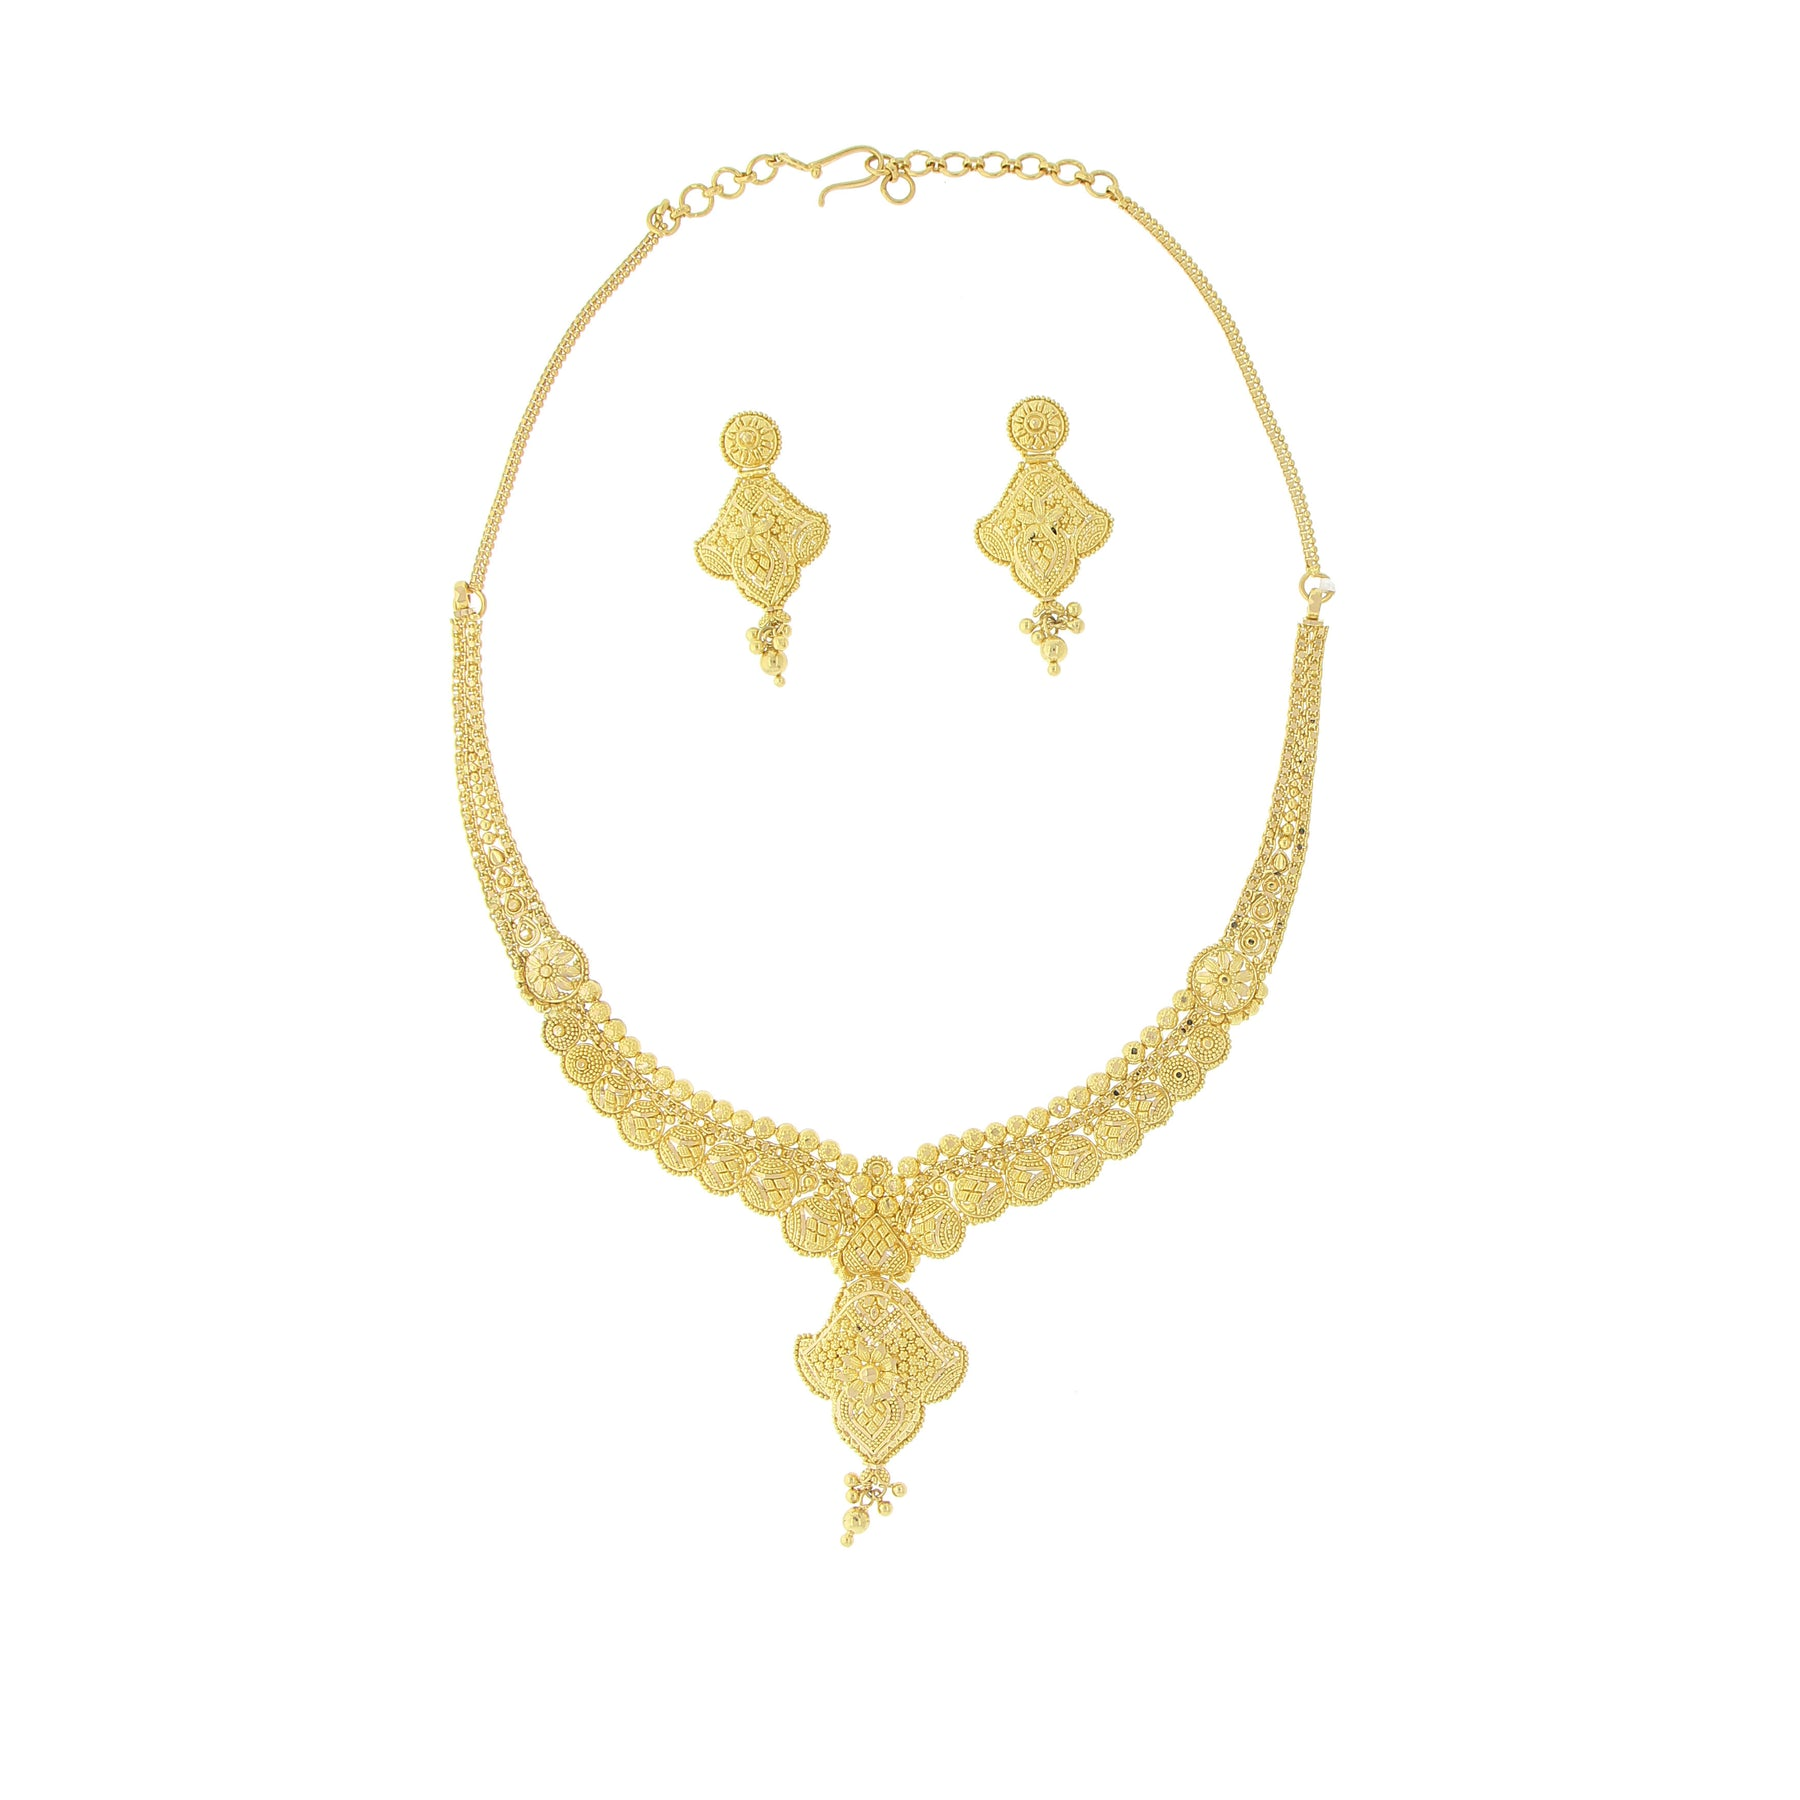 soho e jezebel plain jl shop london jewellery necklace